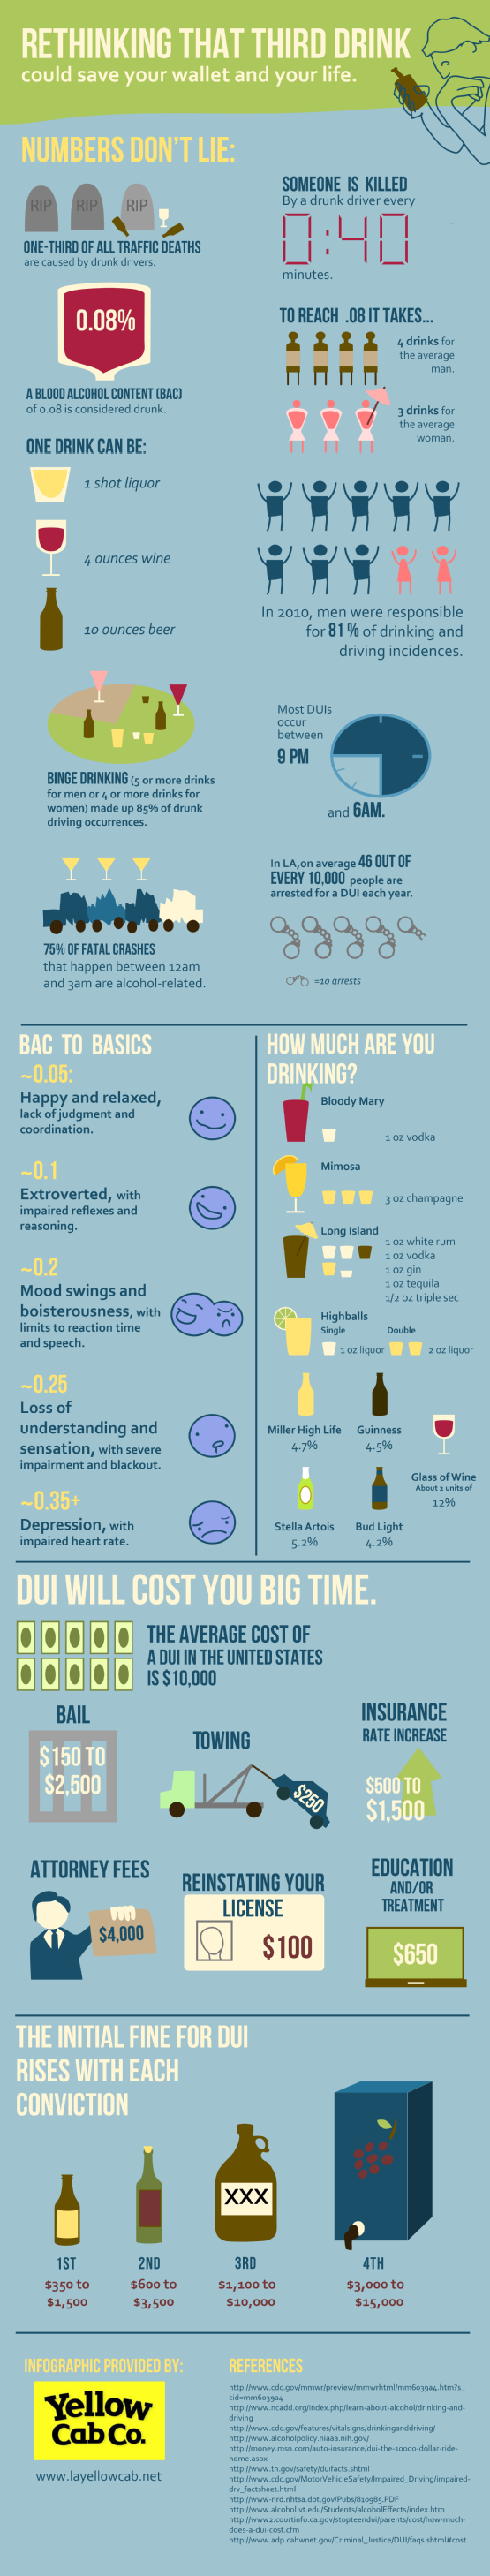 Rethink-That-Third-Drink-(Infographic)